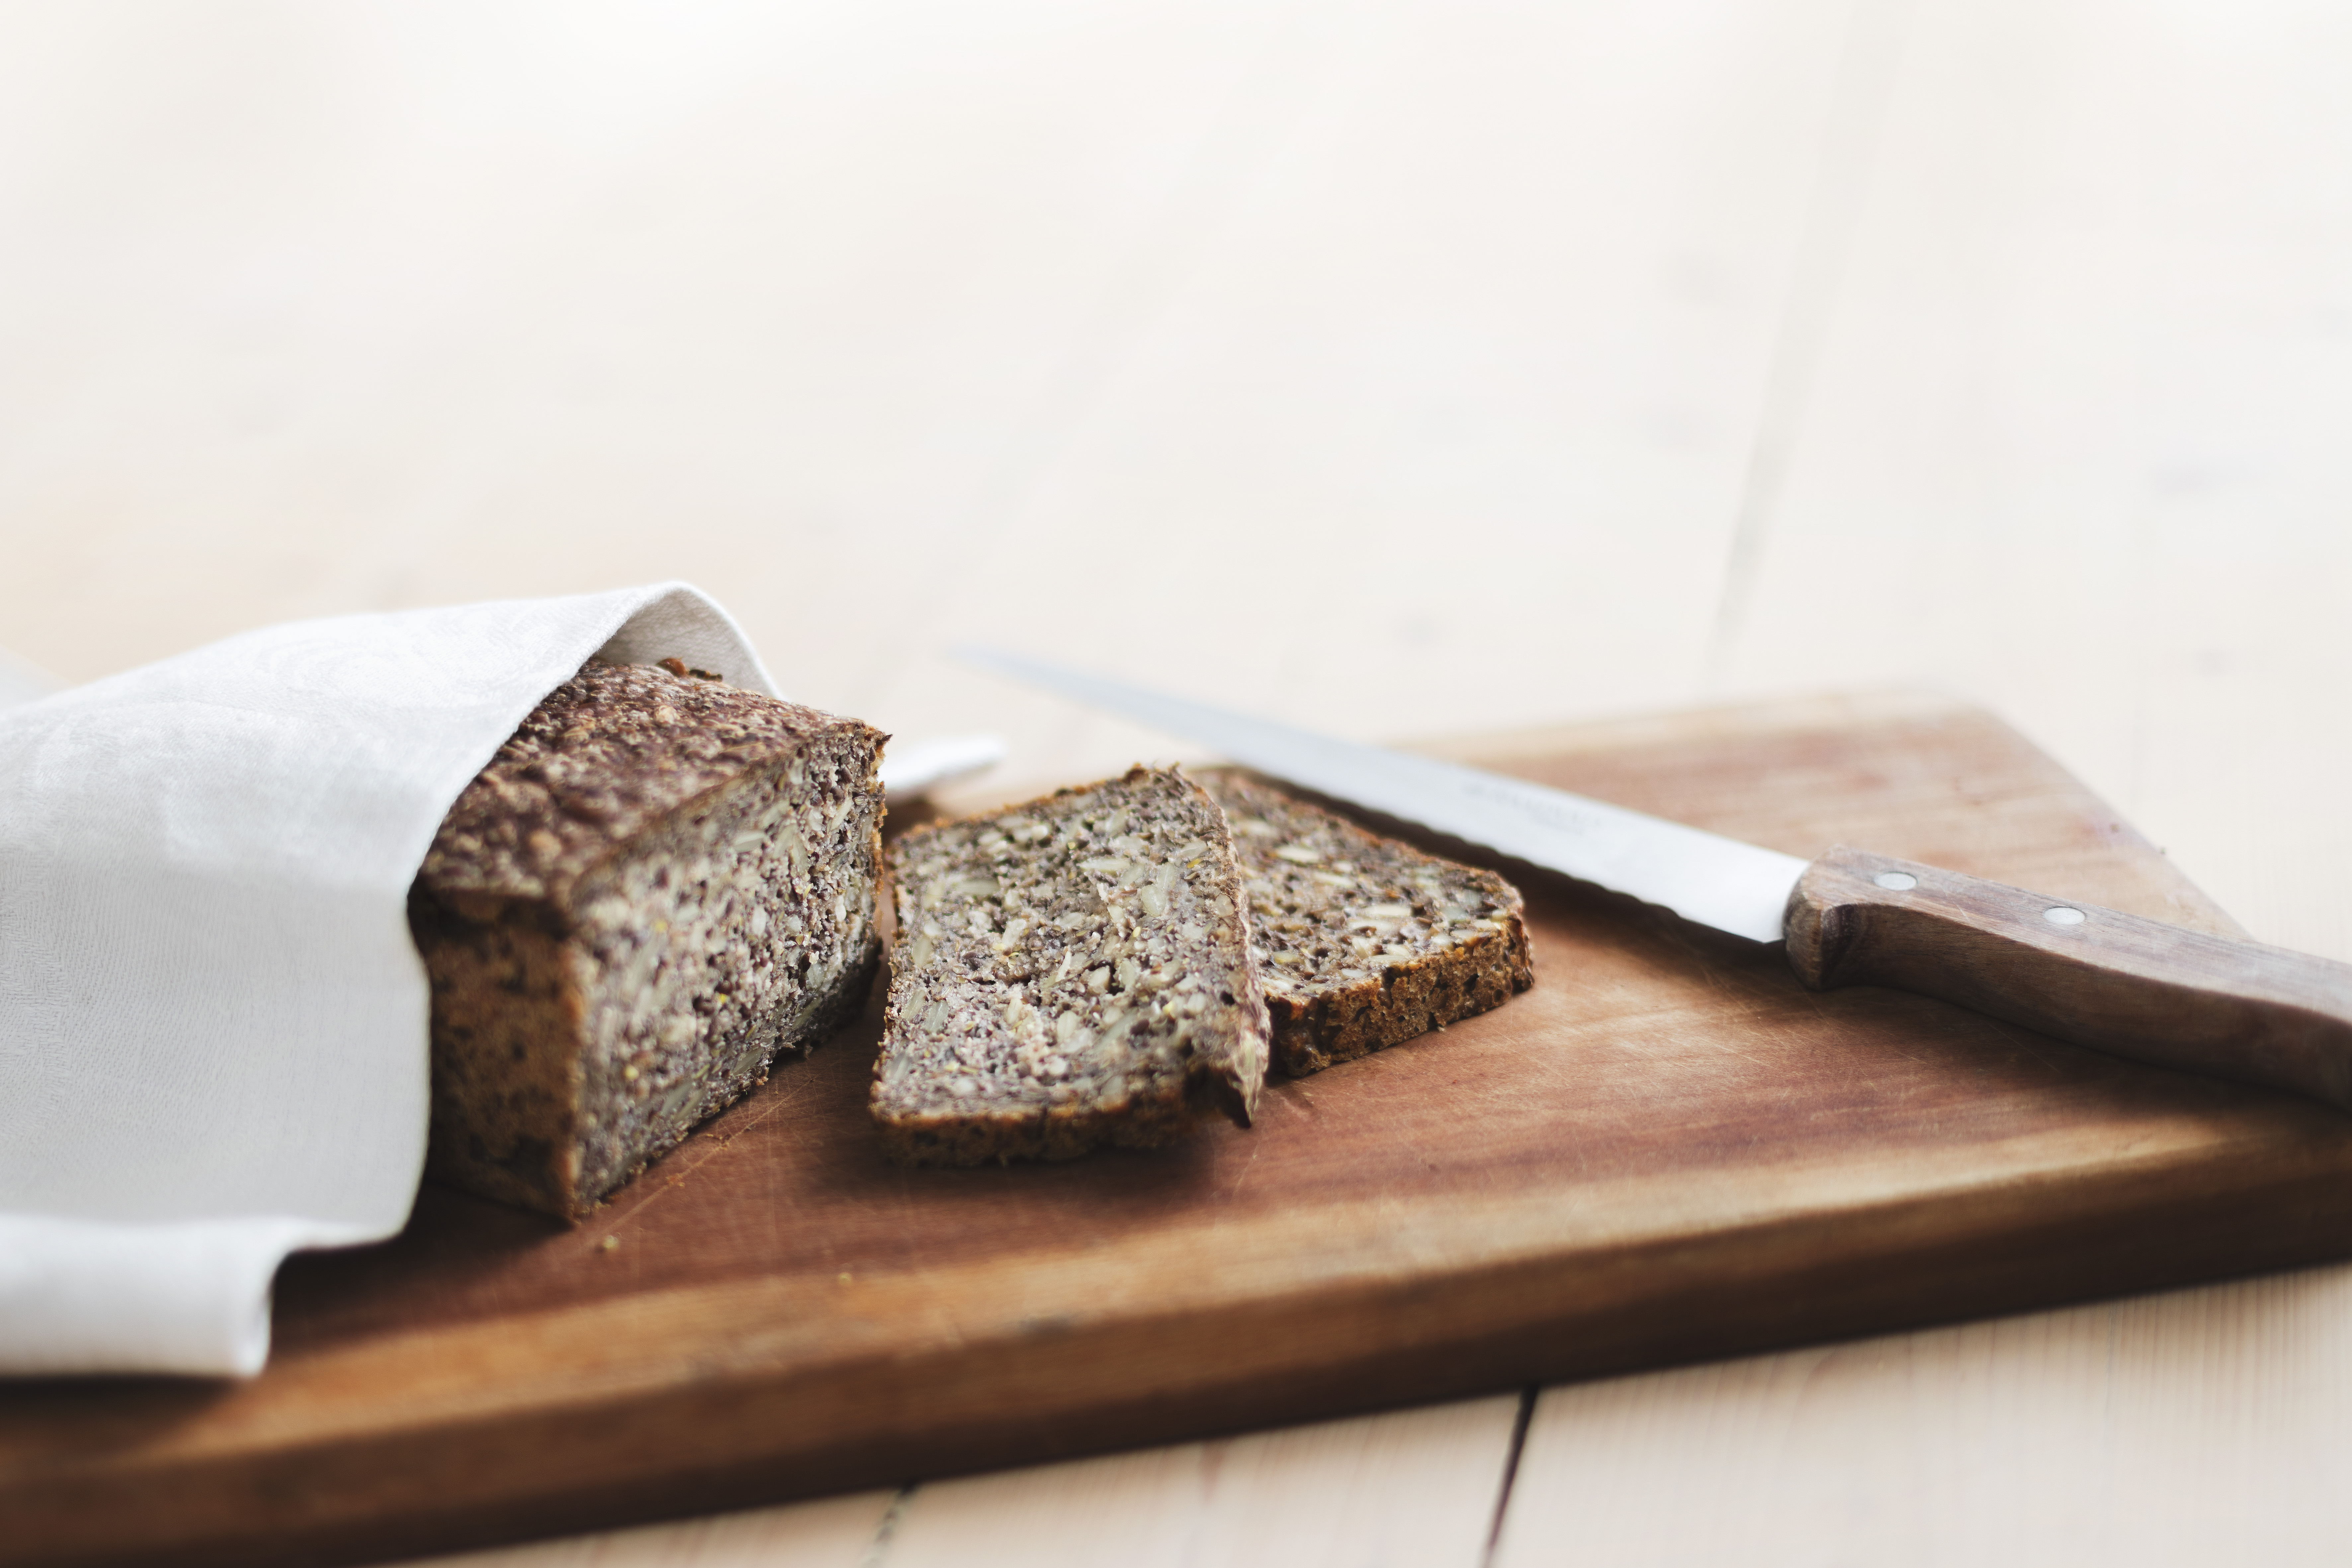 Cutting board and knife with slices of Finnish Rye Bread